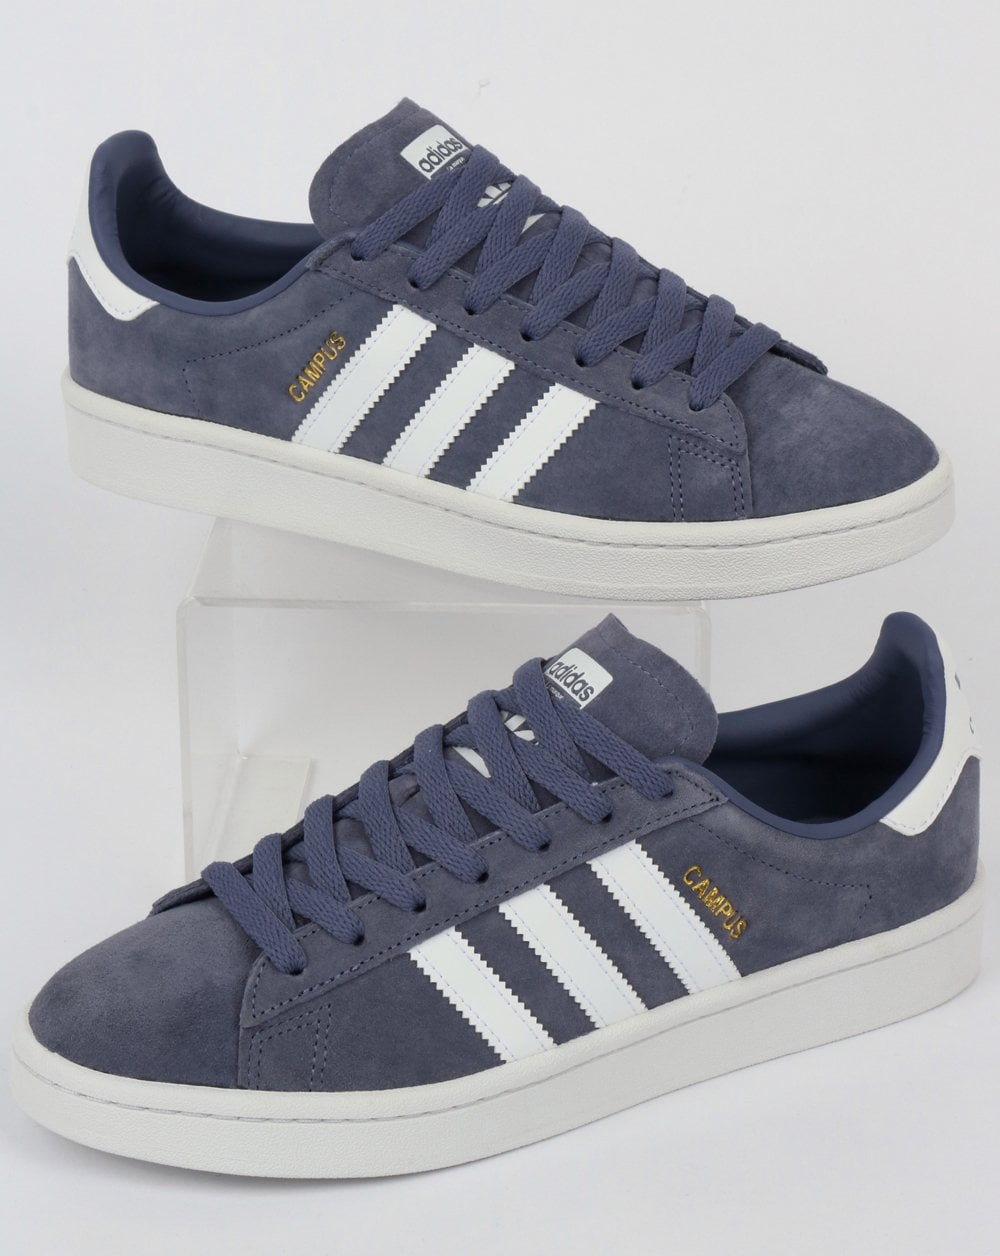 Adidas Campus Trainers Raw IndigoWhite